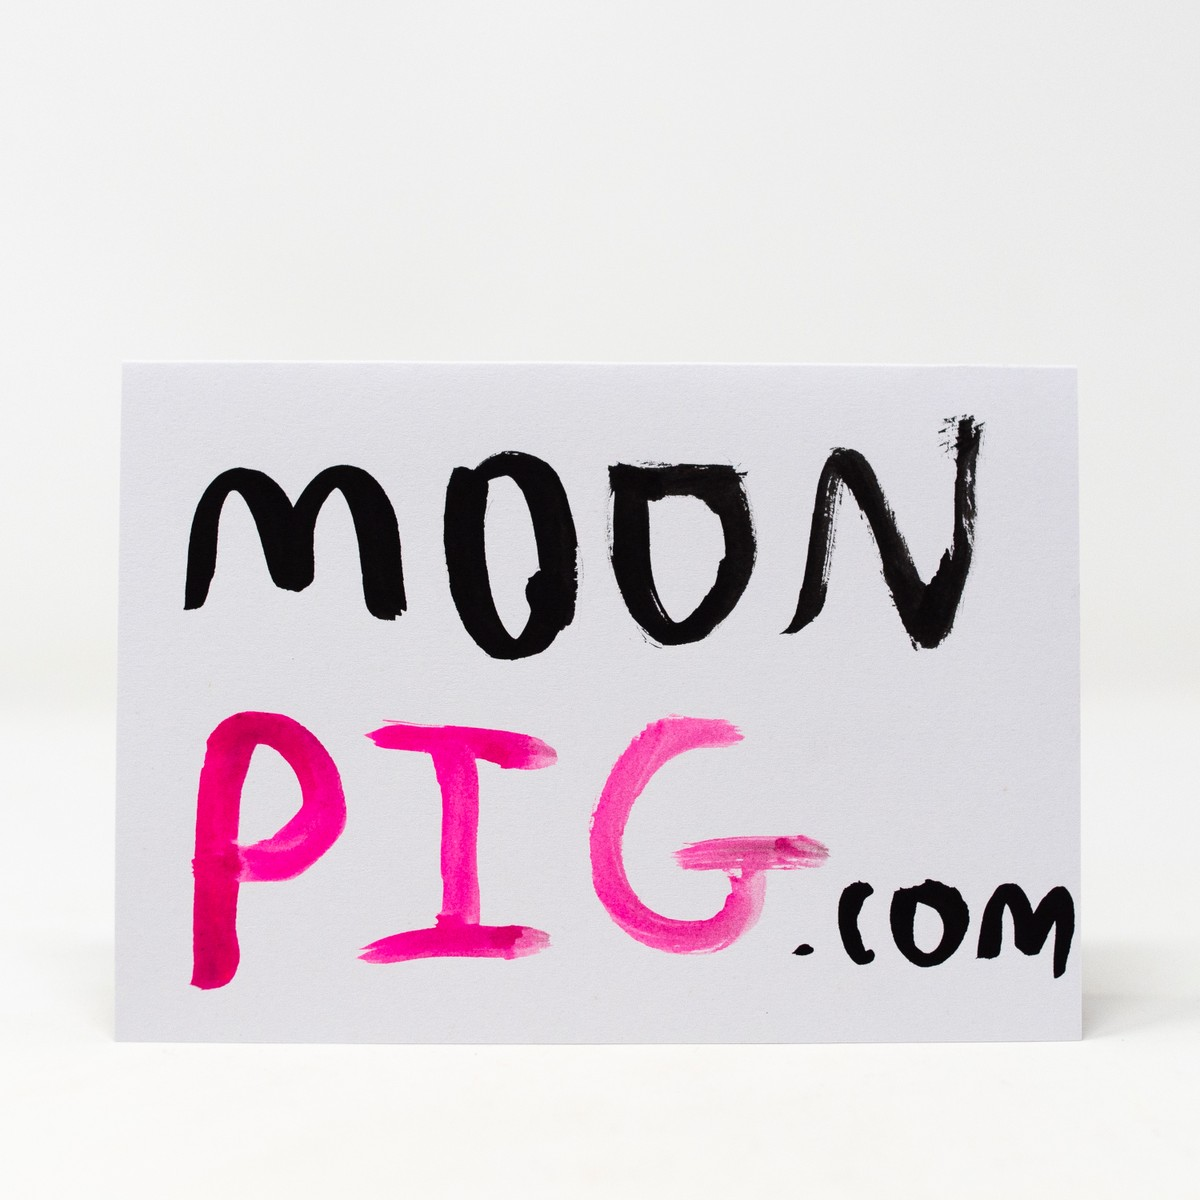 Photo of Moonpig.com Greeting Card